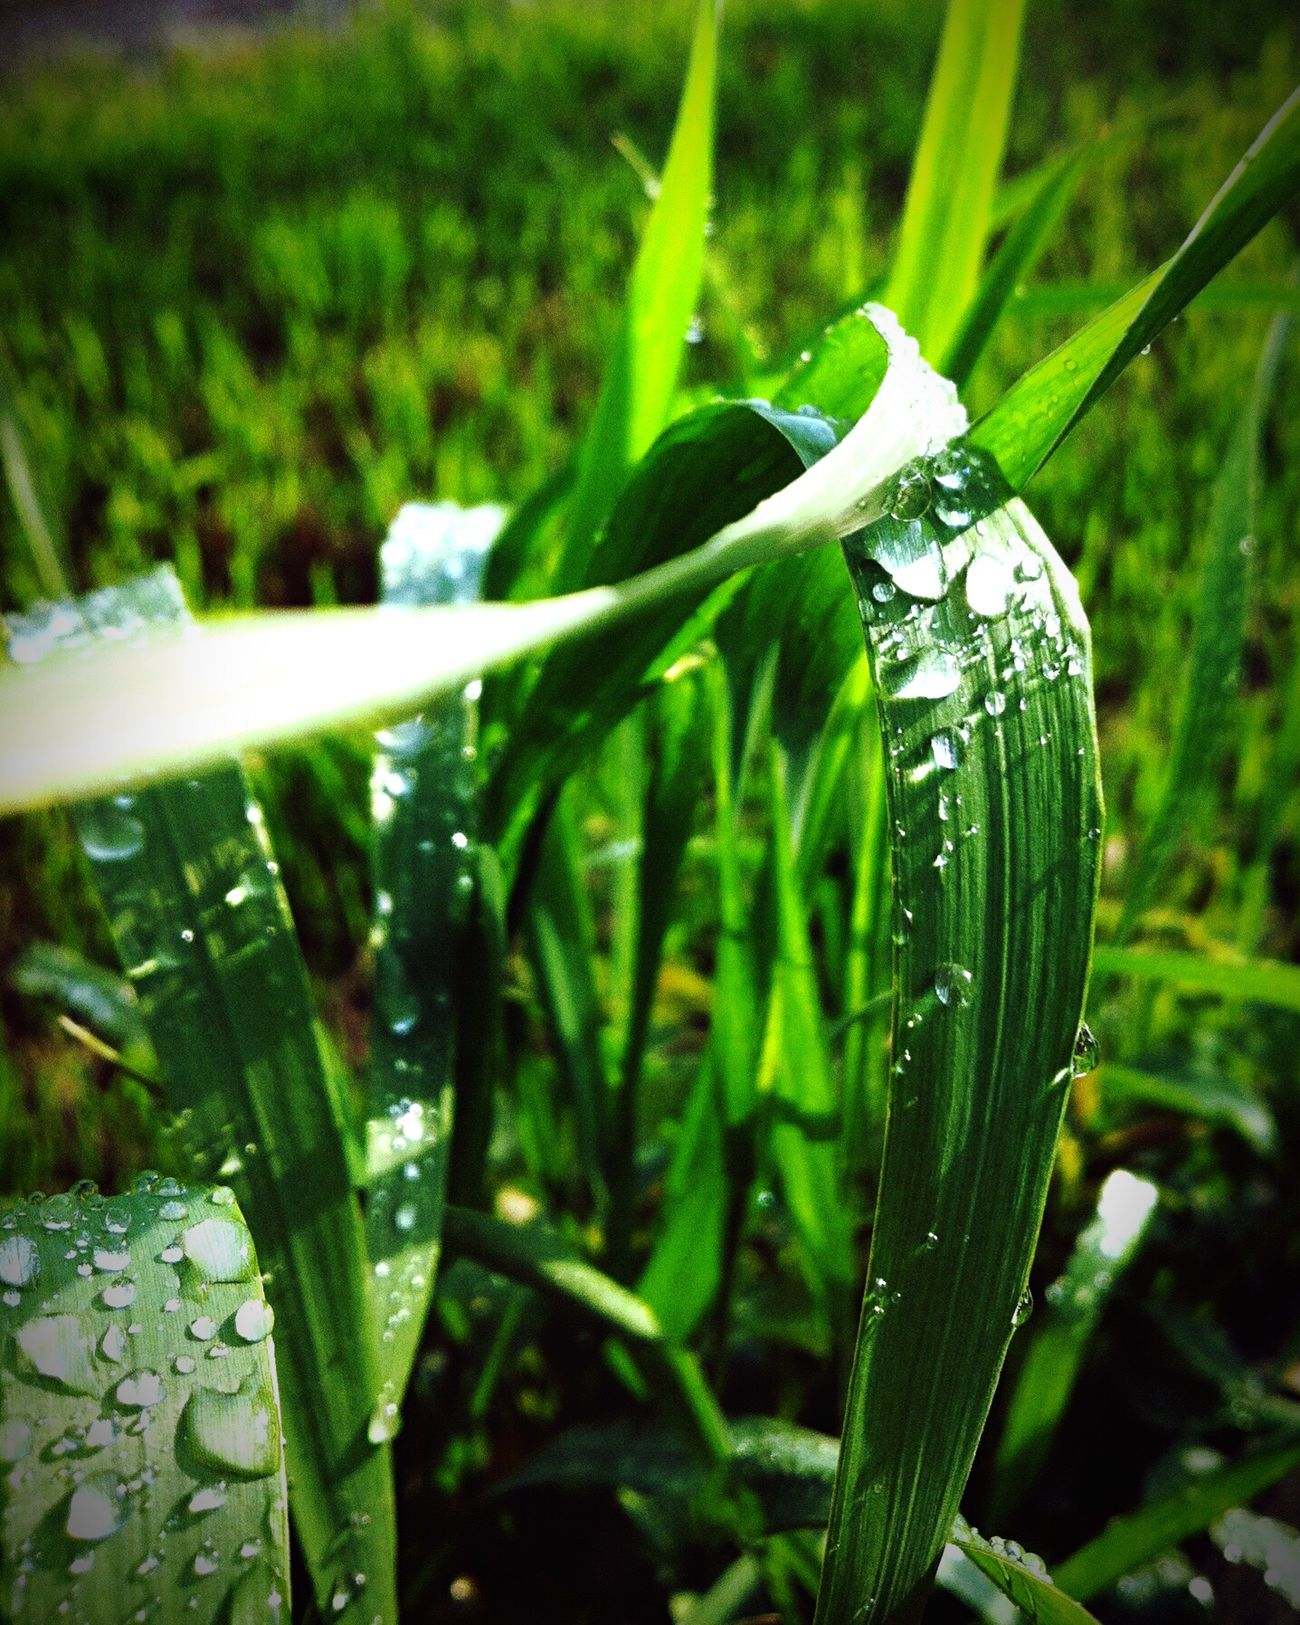 Green Color Nature Day Water Focus On Foreground Plant Beauty In Nature стебель роса утро Красоты природы 💚🌿